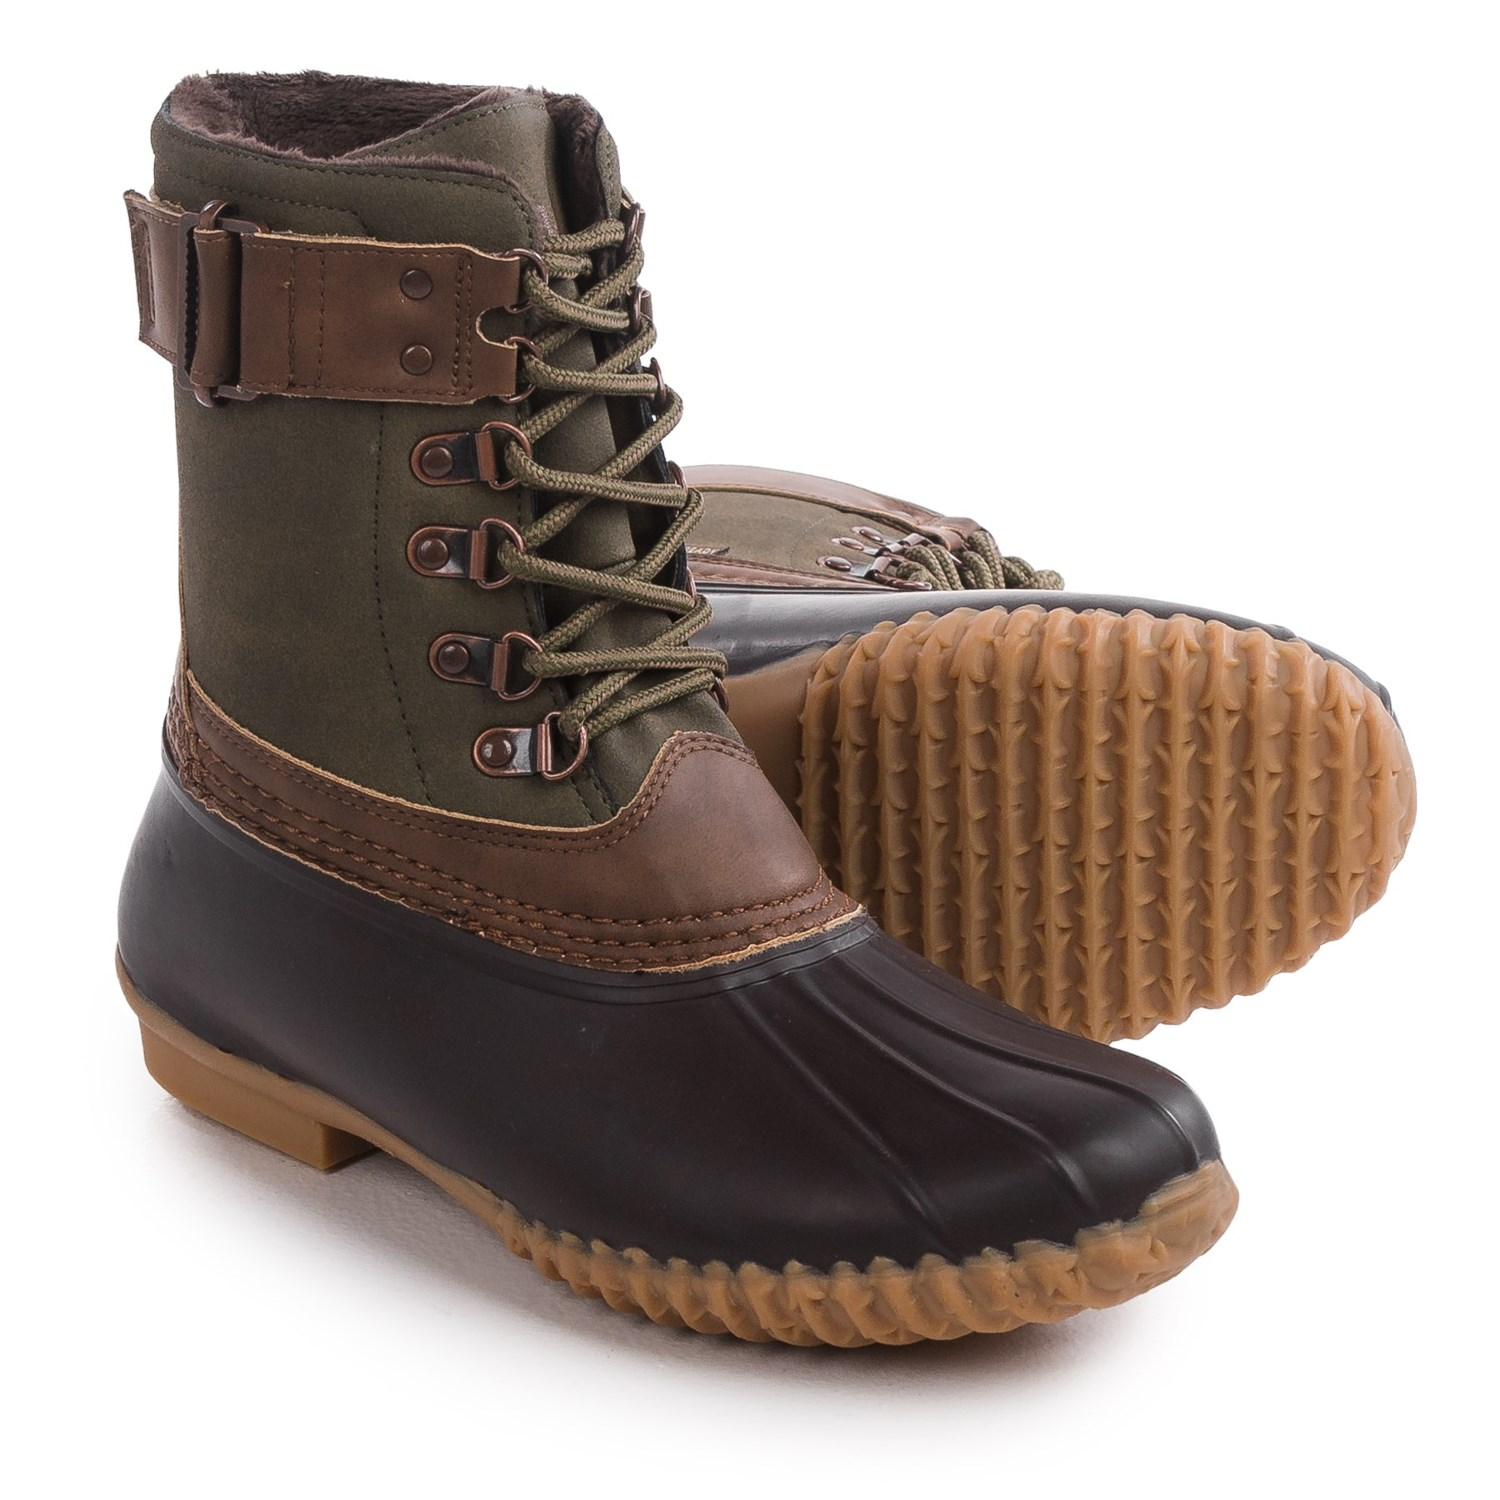 jbu by jambu scotia duck boots for 170nr